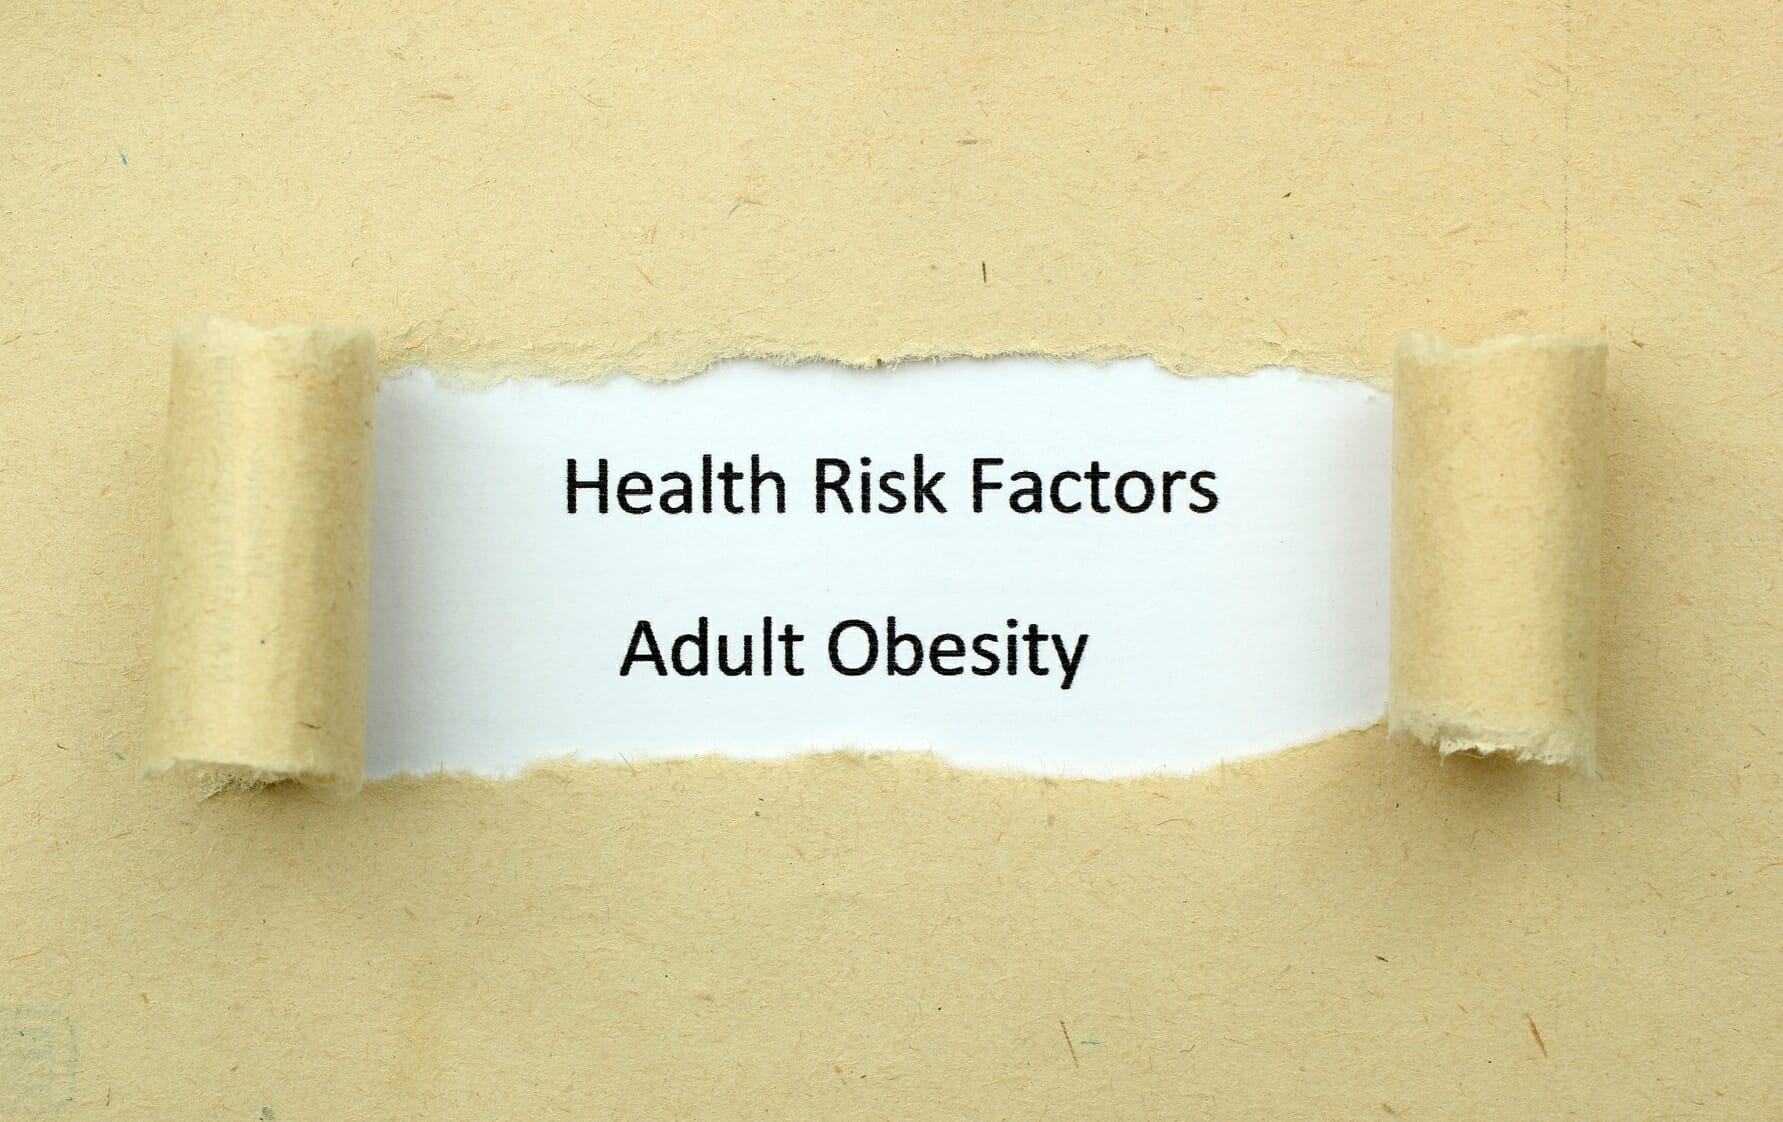 Health risk factors of adult obesity